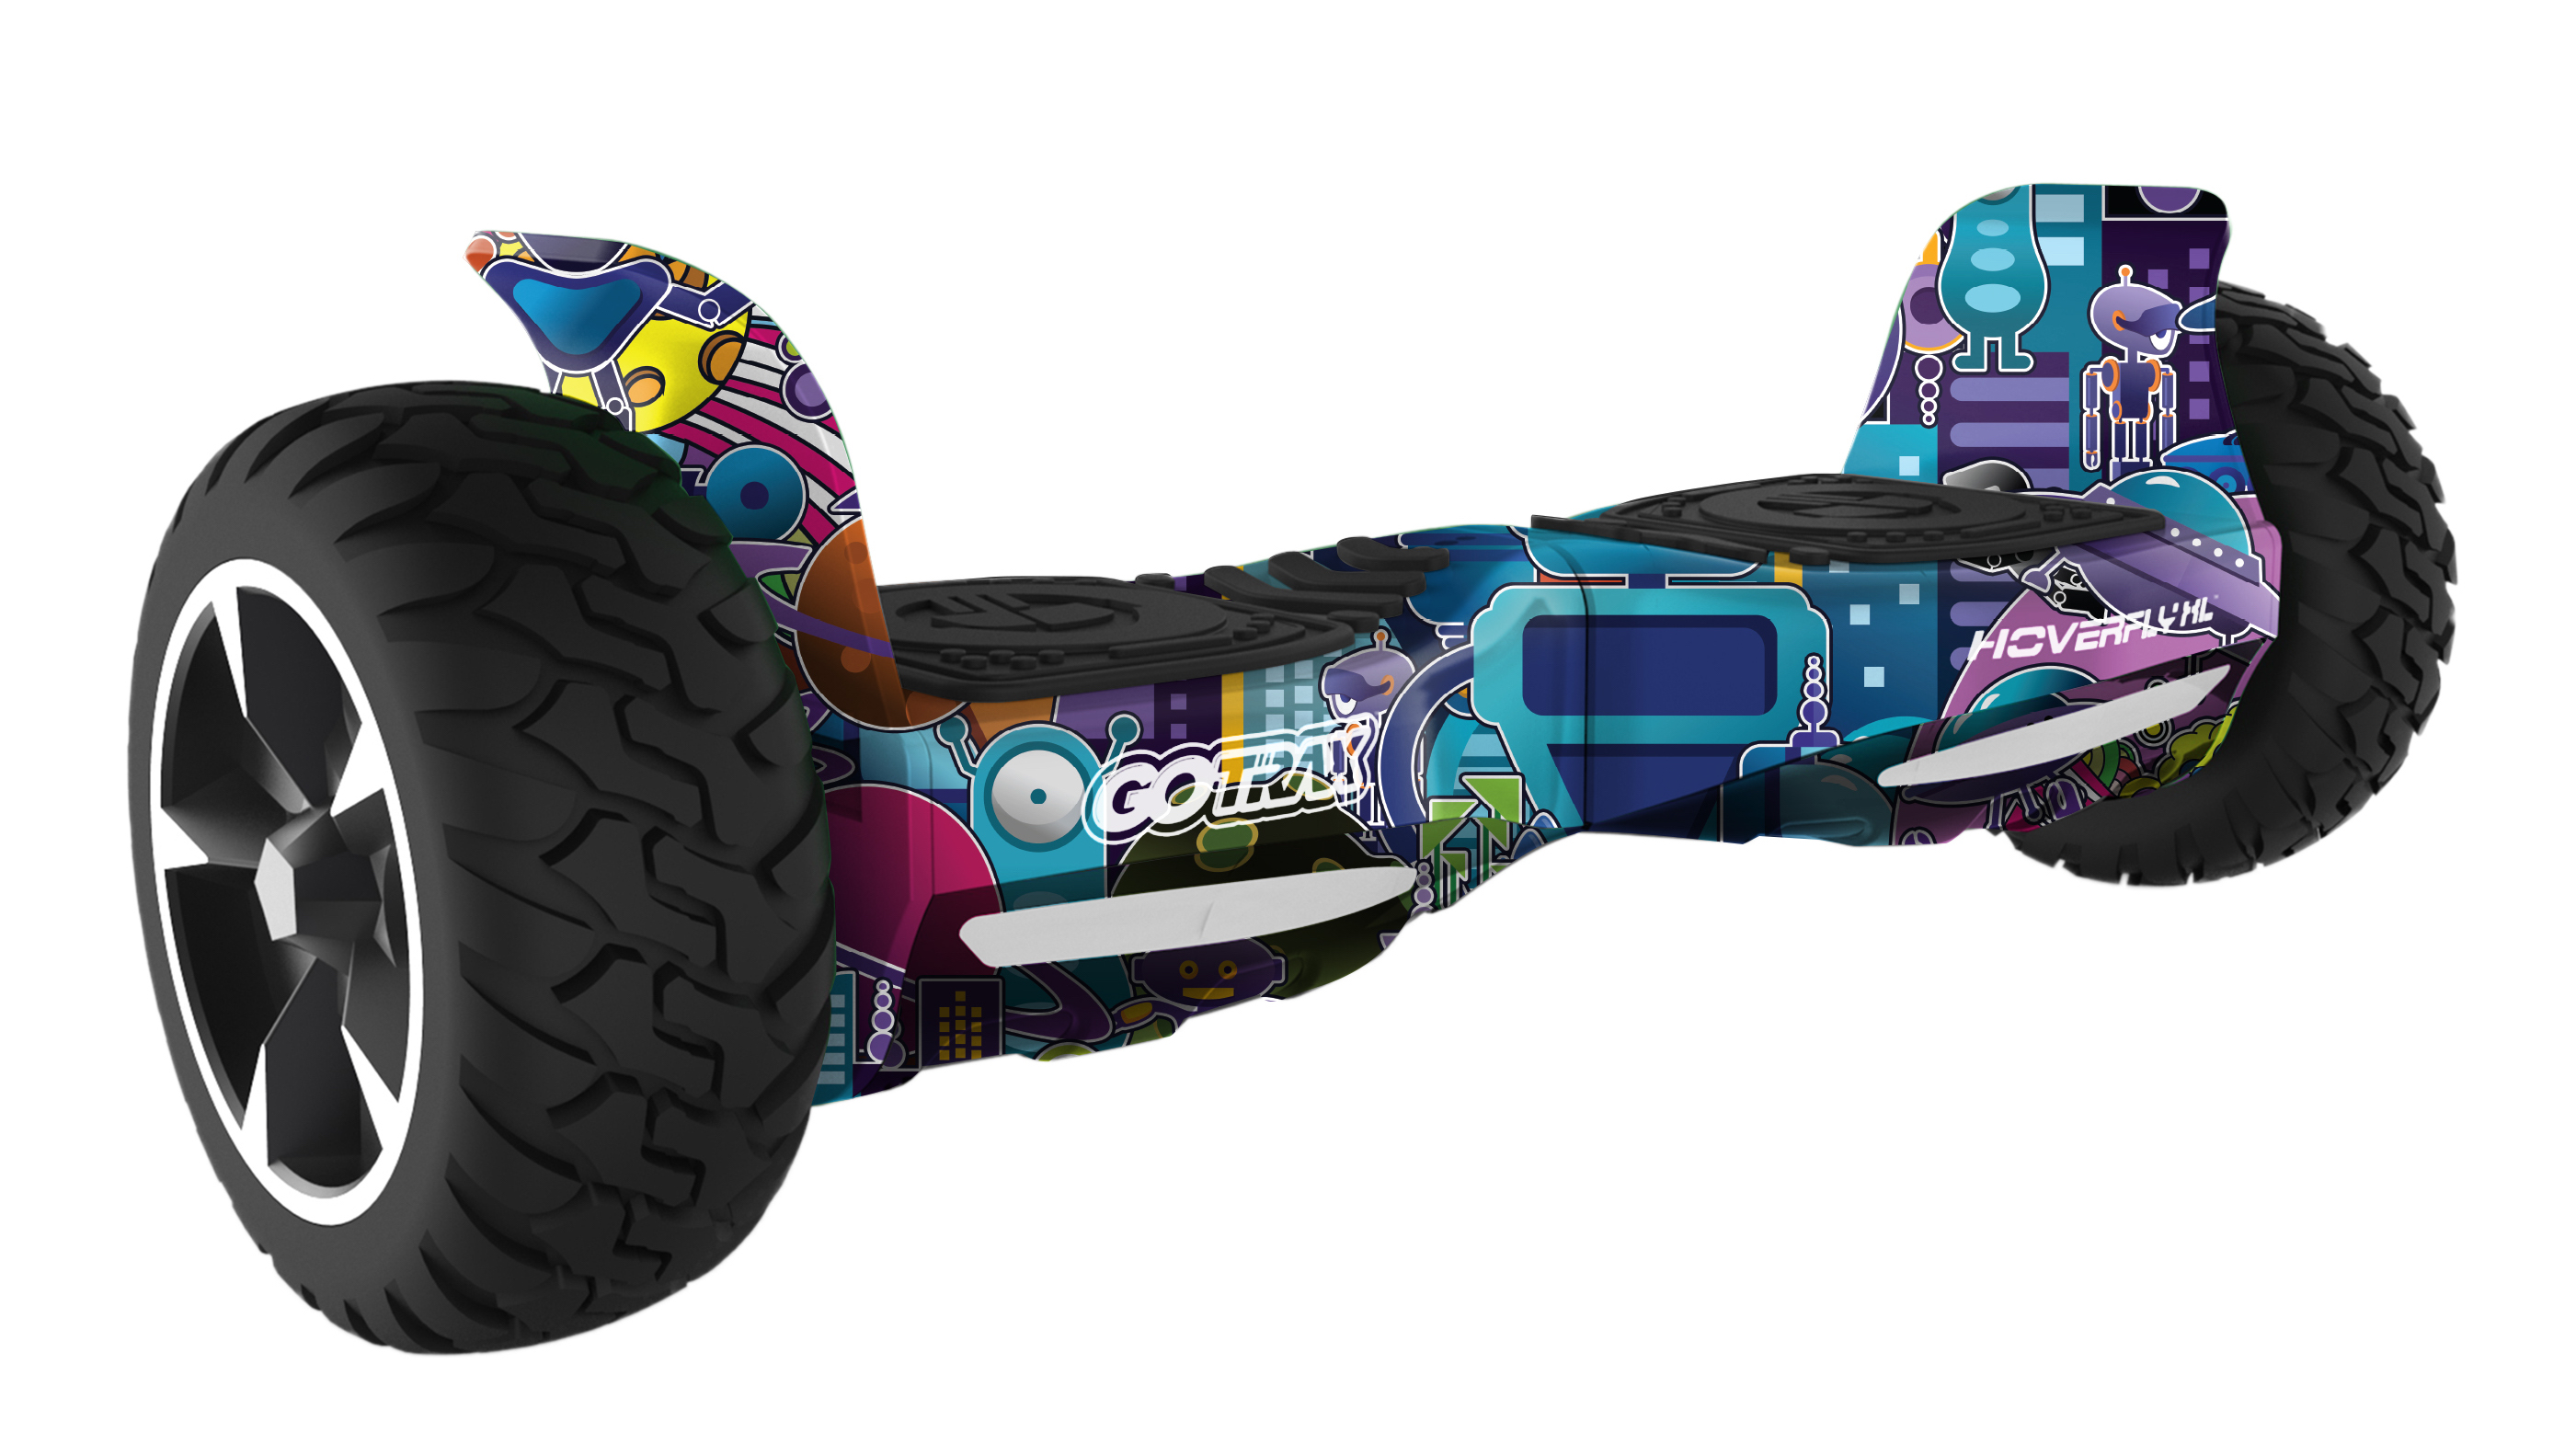 Water Hoverboard For Sale >> GOTRAX Releases Limited Edition GALAXY Versions of its Best Selling Hoverboards